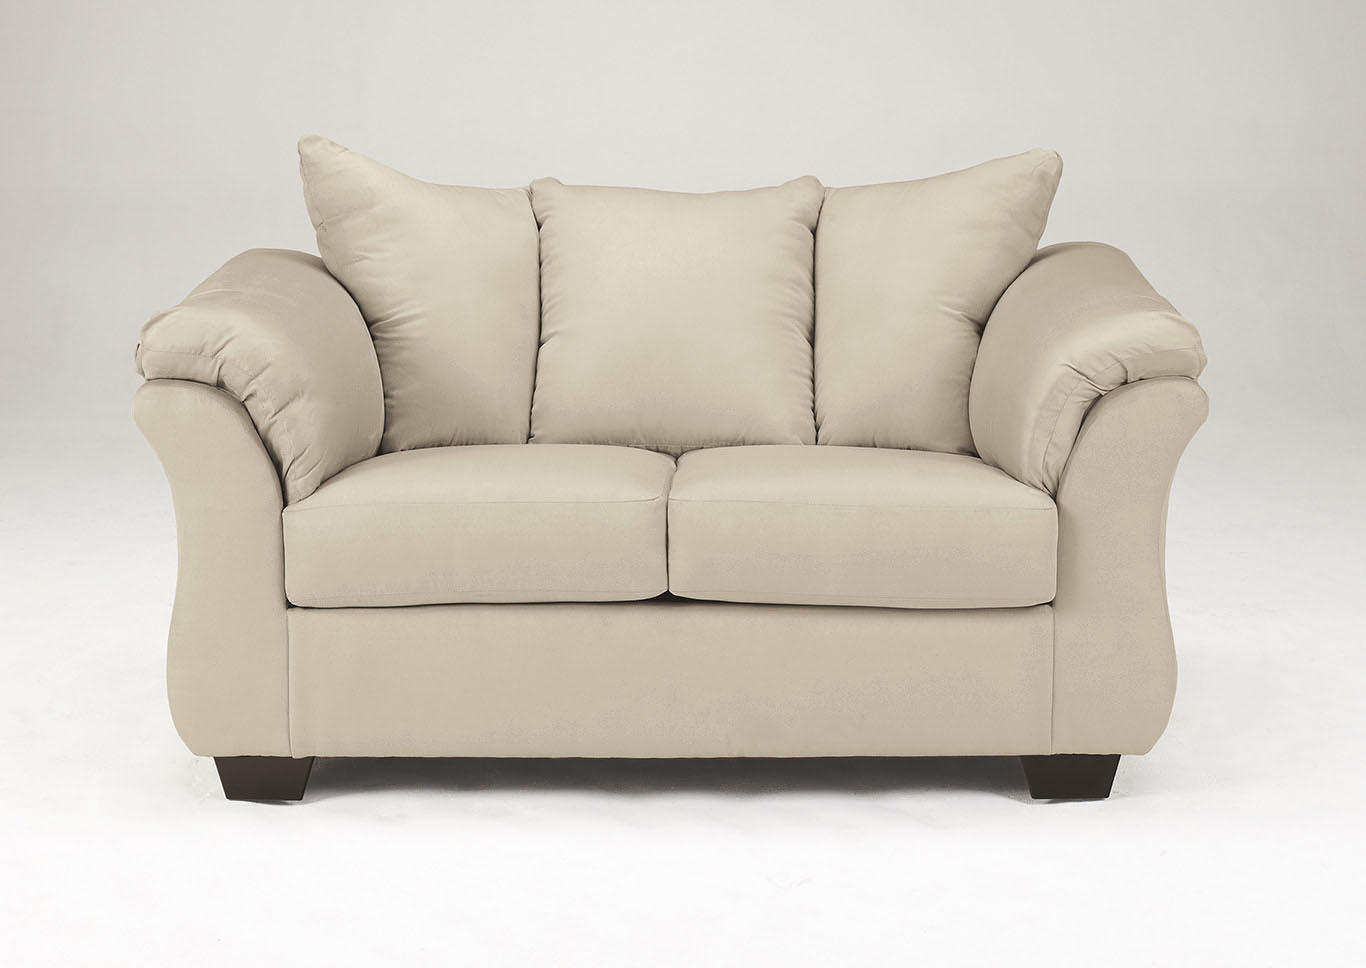 Darcy Stone Loveseat,ABF Signature Design by Ashley